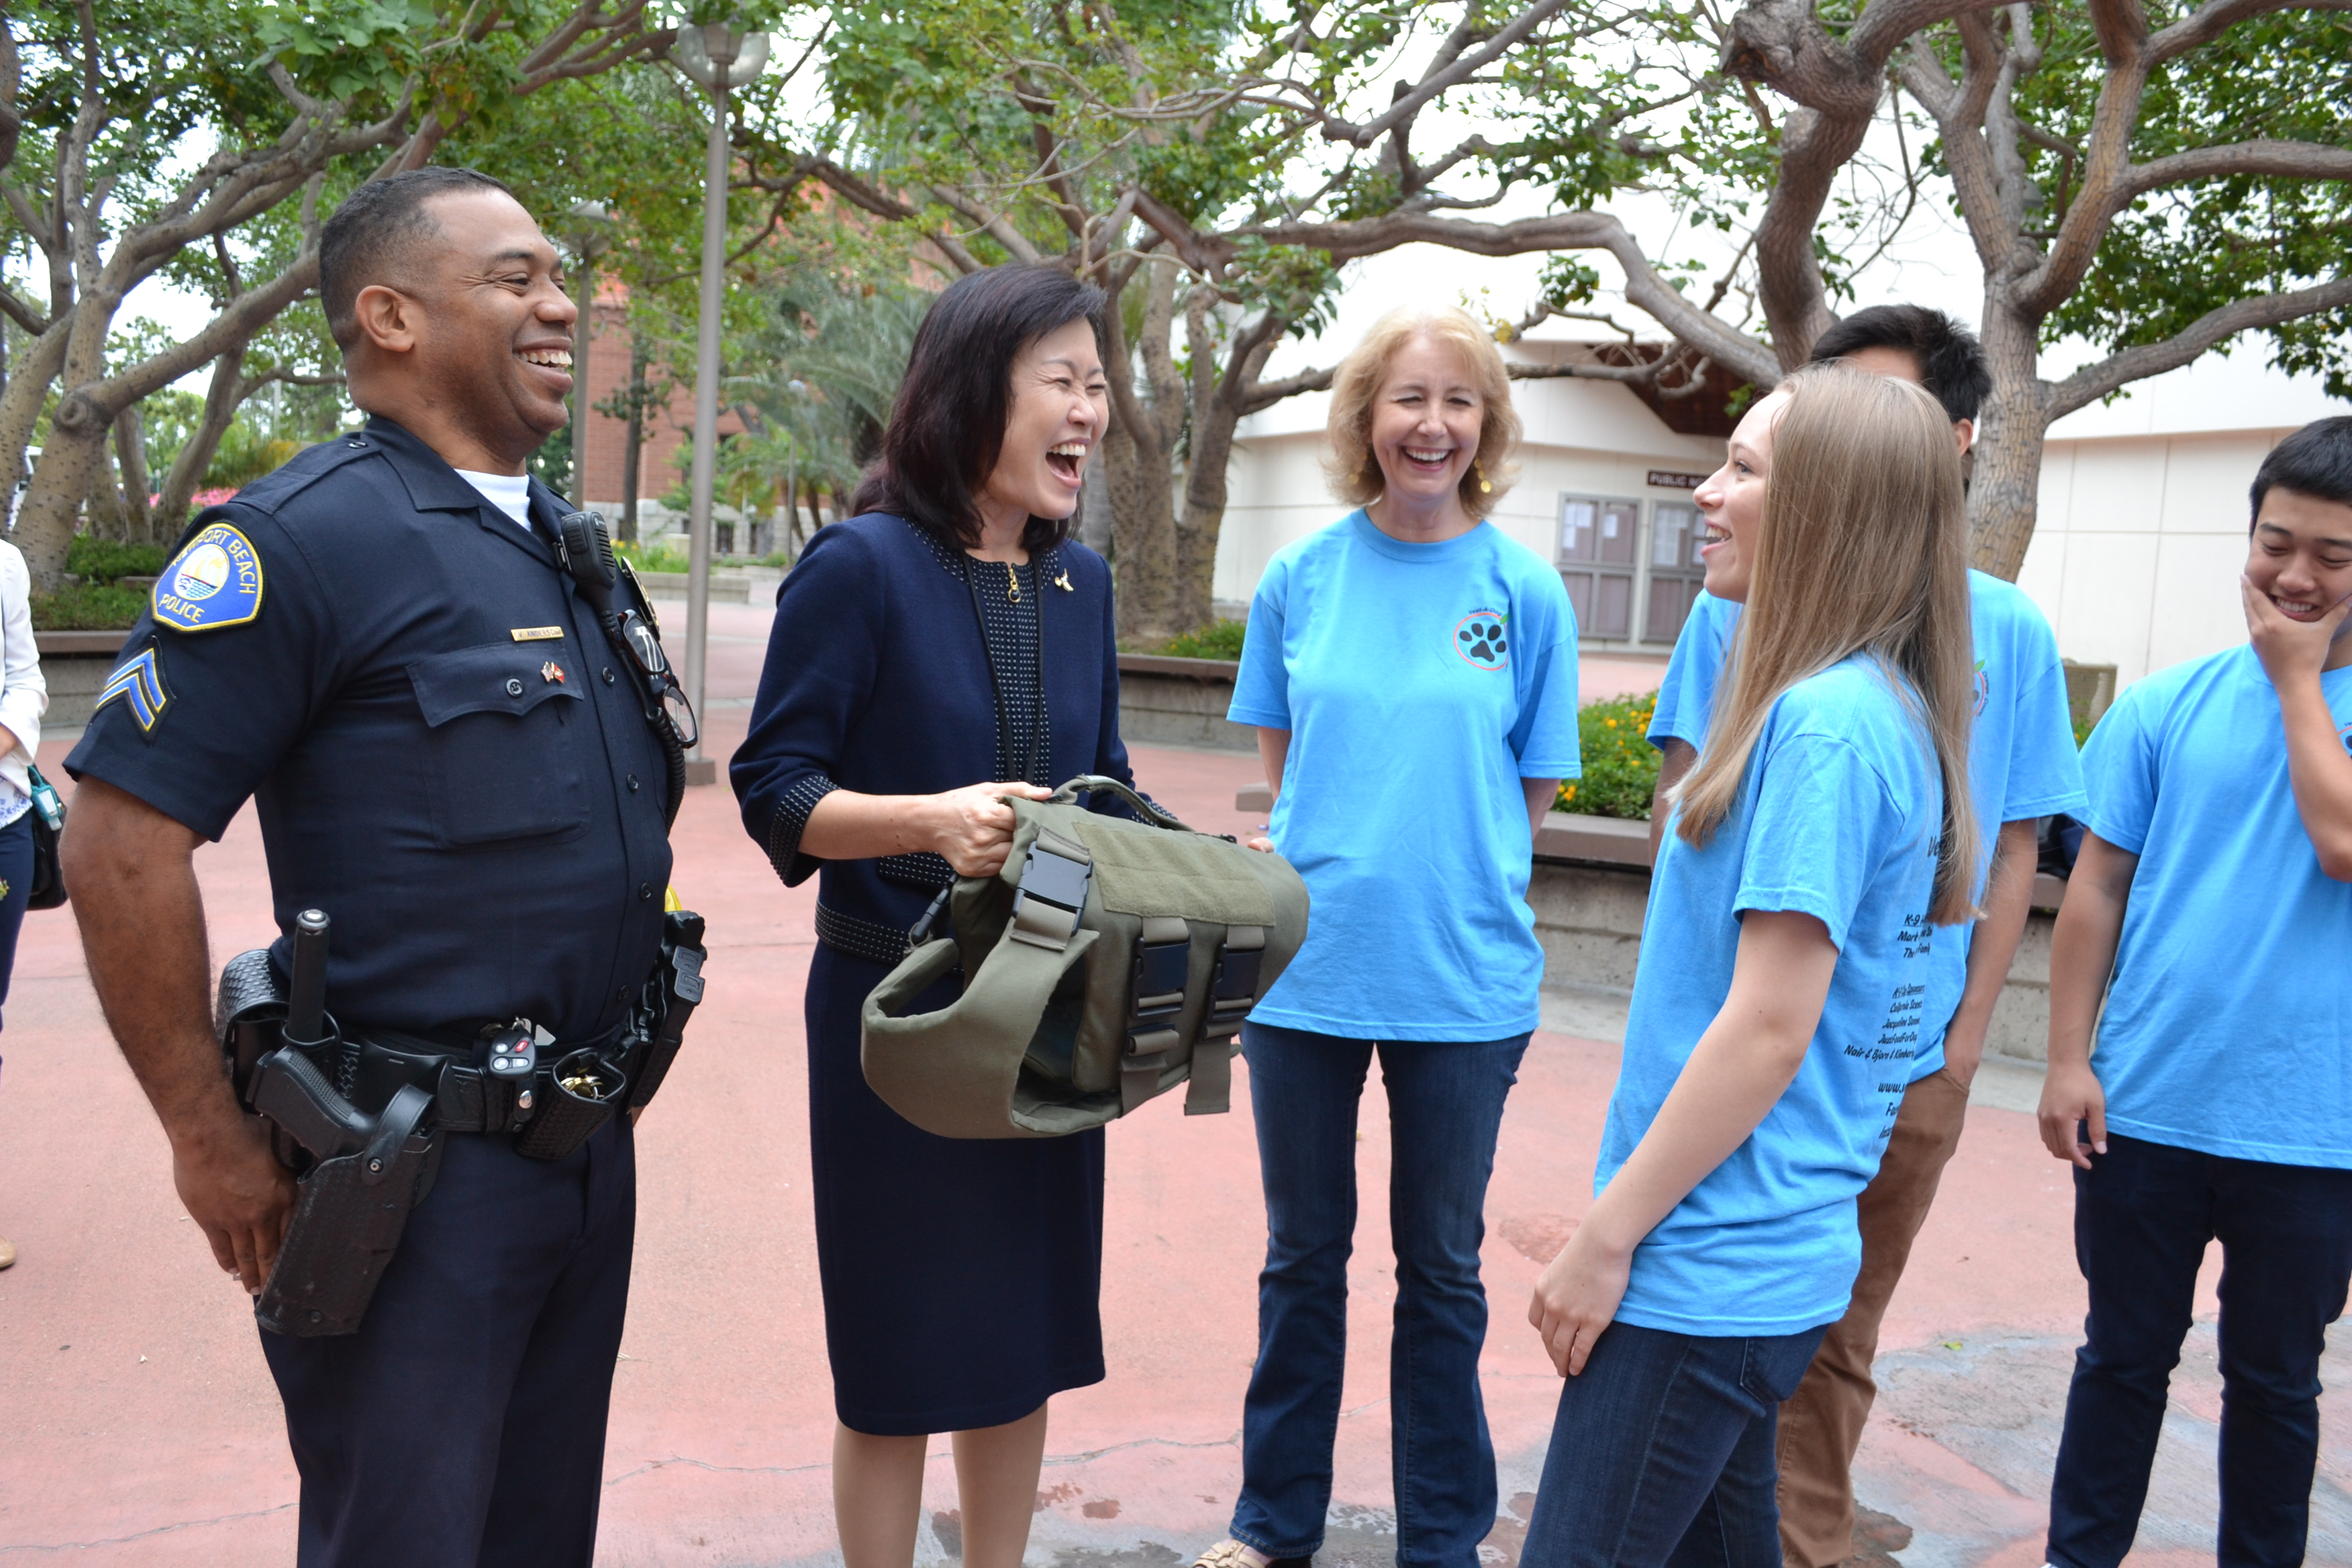 Newport Beach Local News Club Provides Police Dogs With Protective Vests